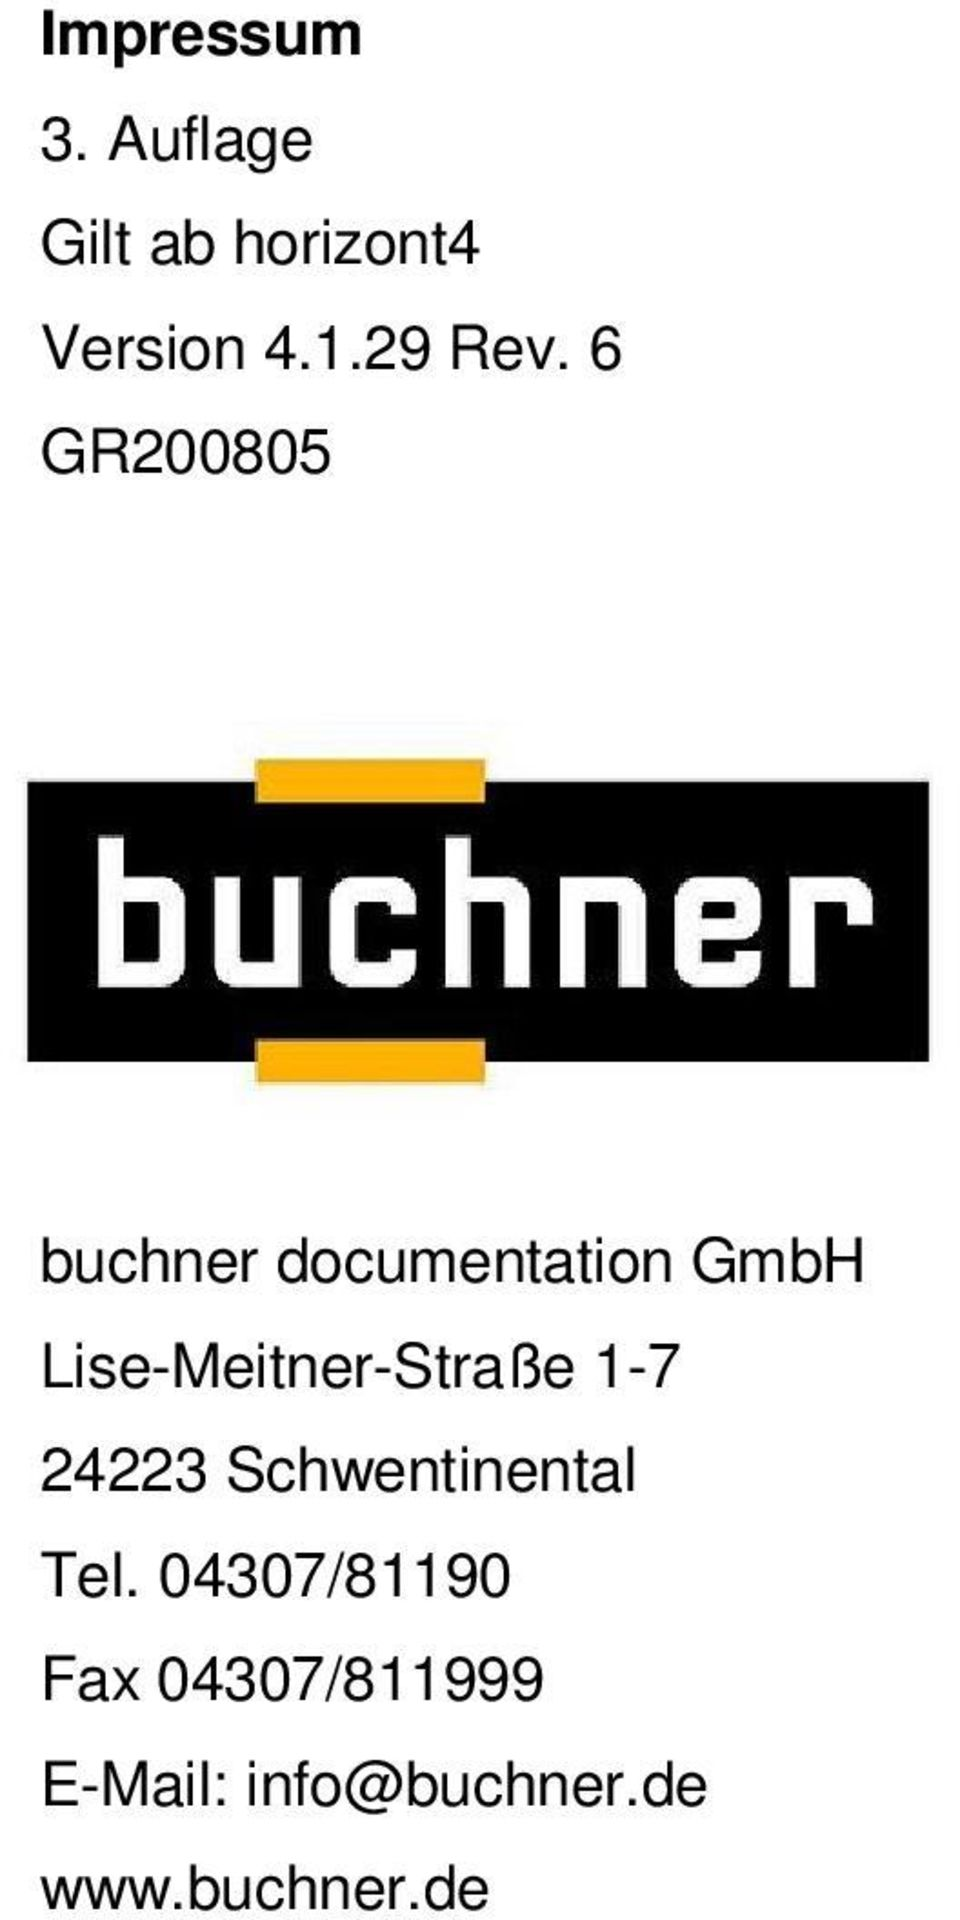 6 GR200805 buchner documentation GmbH